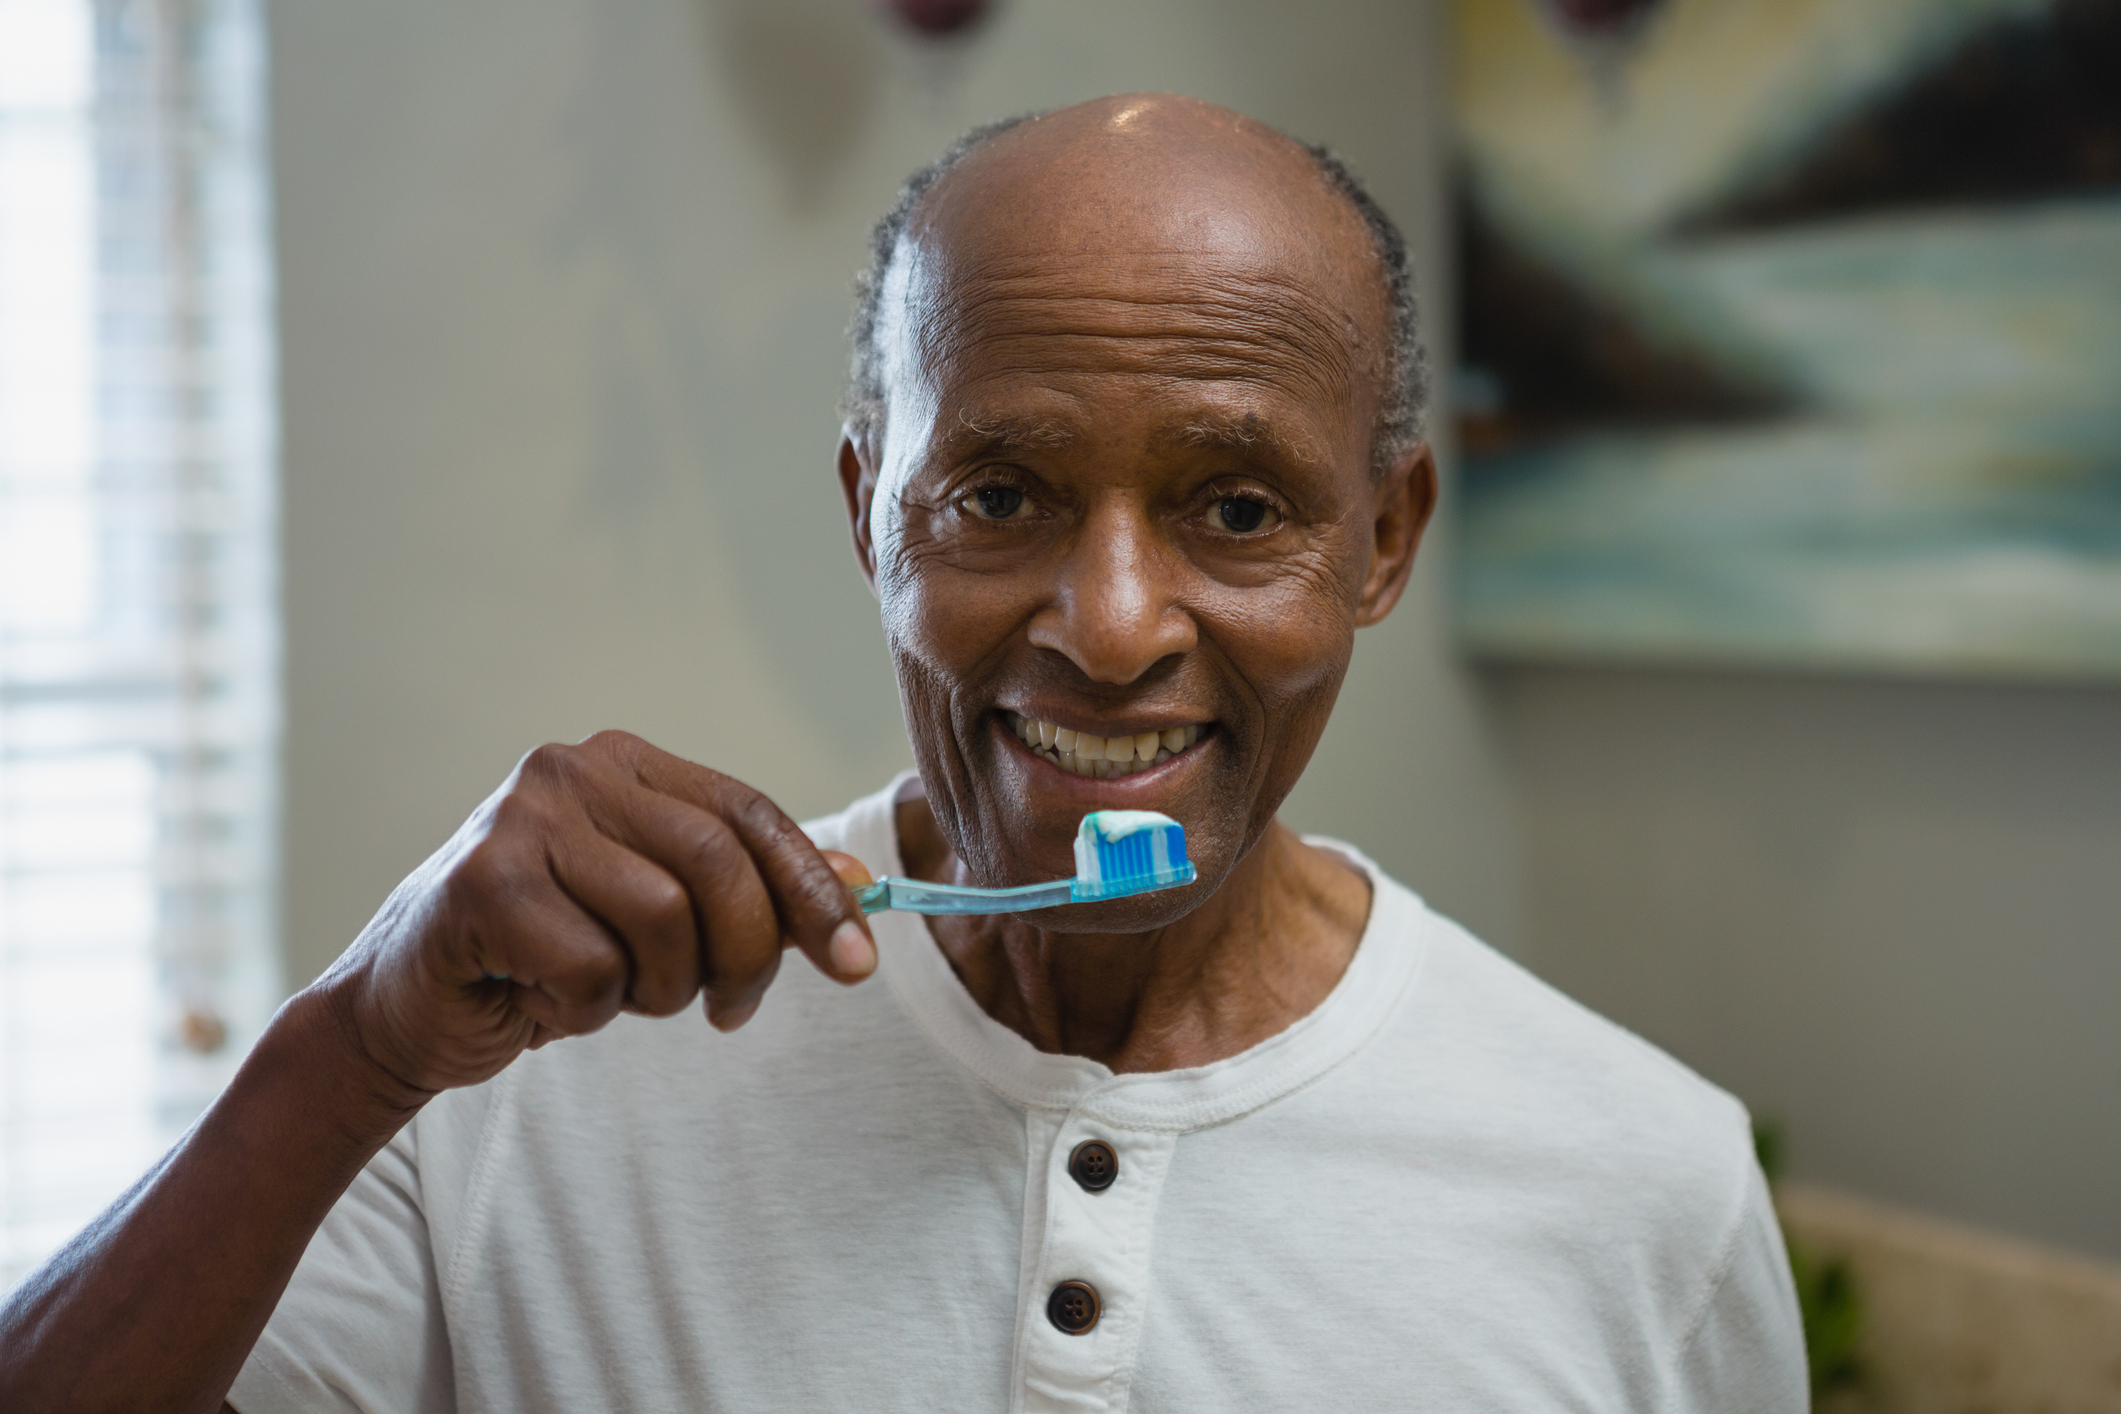 A man brushing his teeth getting ready for the day